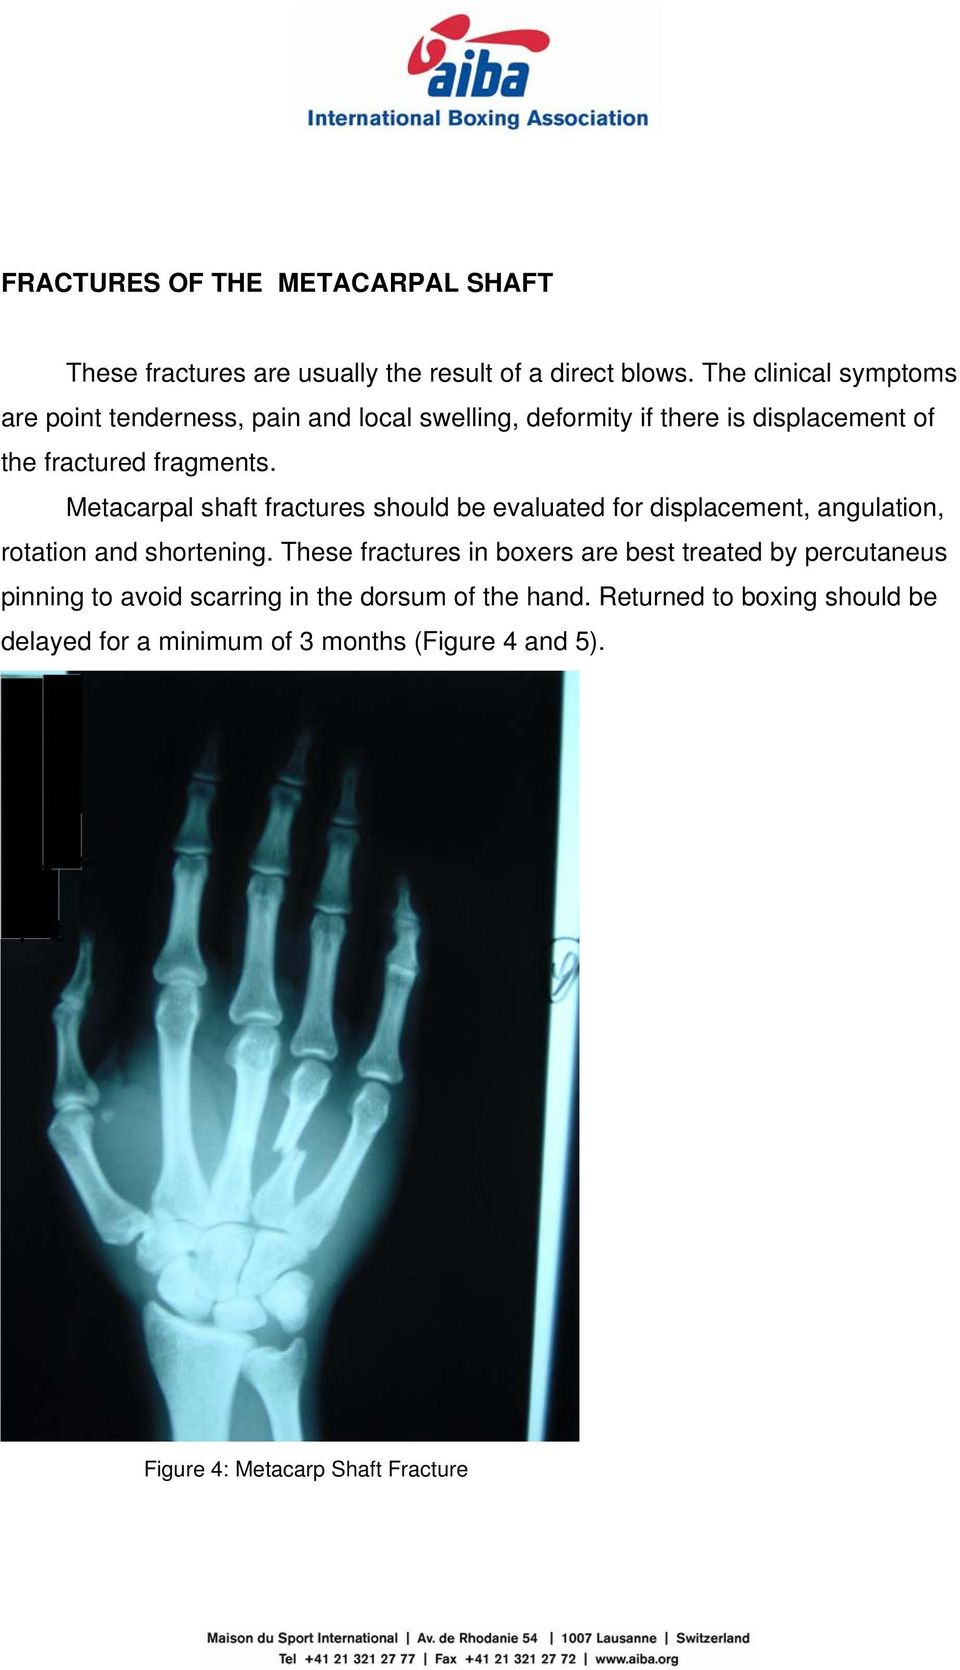 Metacarpal shaft fractures should be evaluated for displacement, angulation, rotation and shortening.